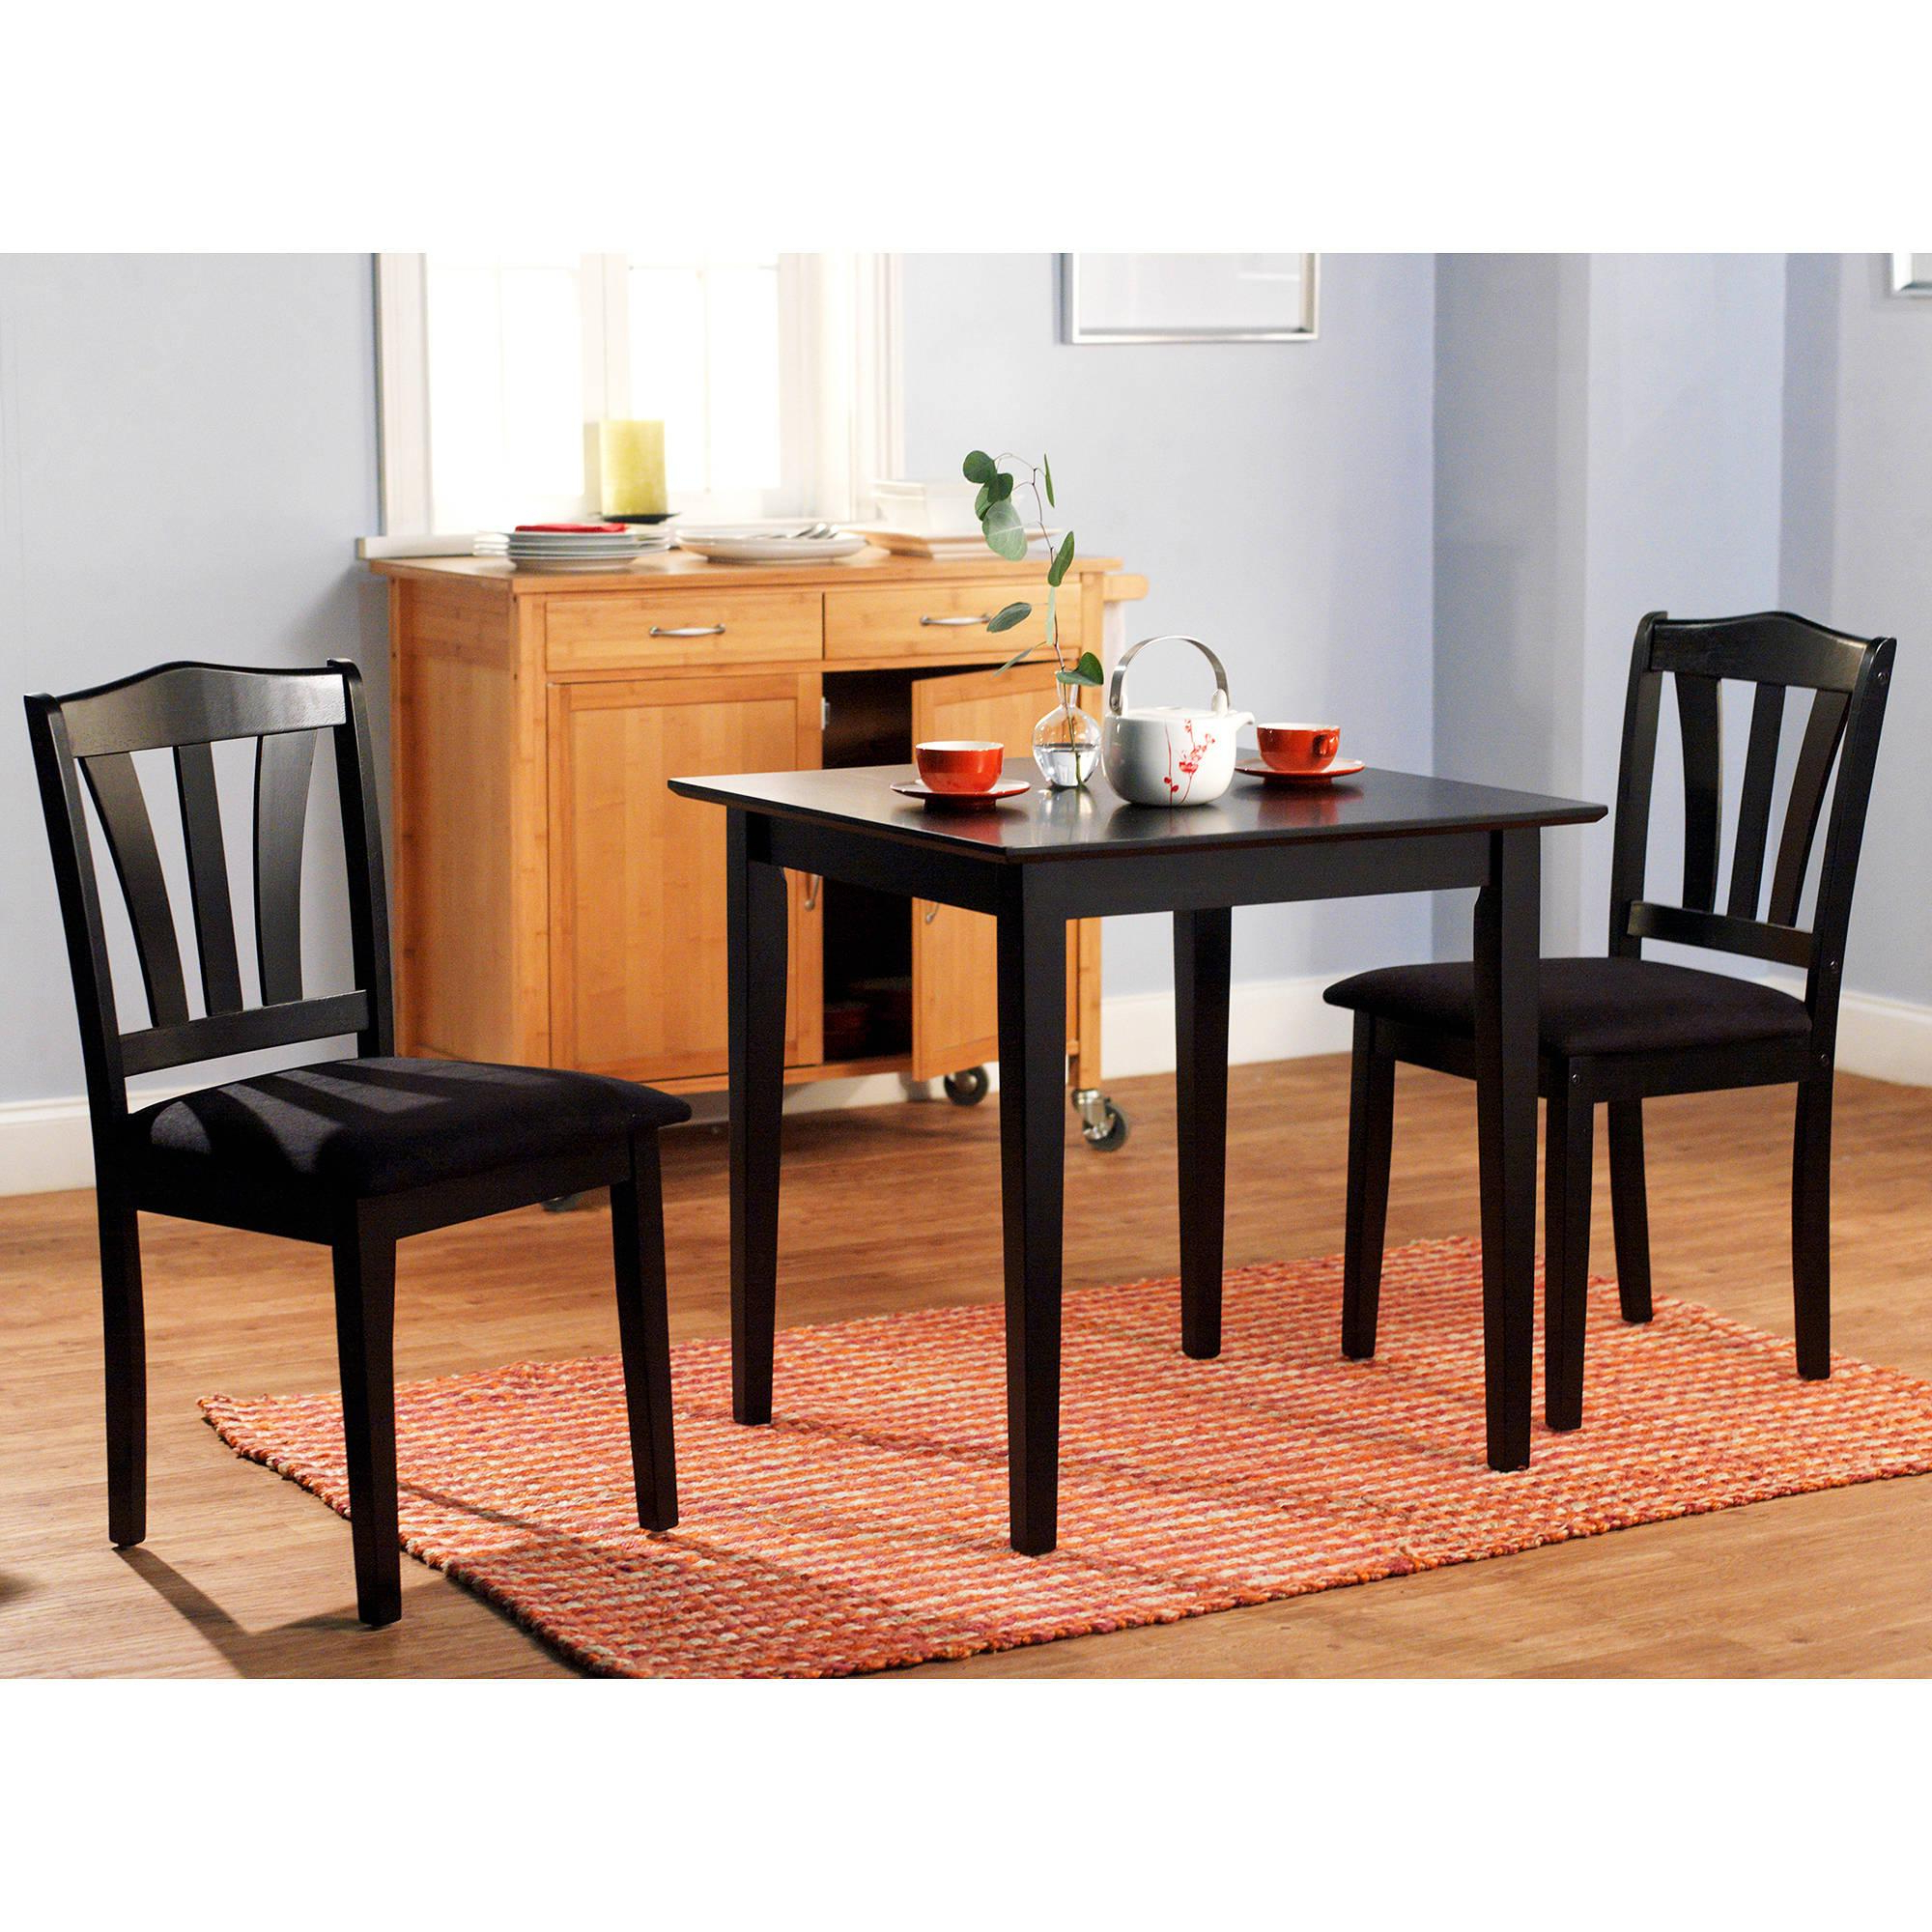 Newest 3 Piece Dining Sets In Details About 3 Piece Dining Set Table 2 Chairs Kitchen Room Wood Furniture  Dinette Modern New (Gallery 10 of 20)